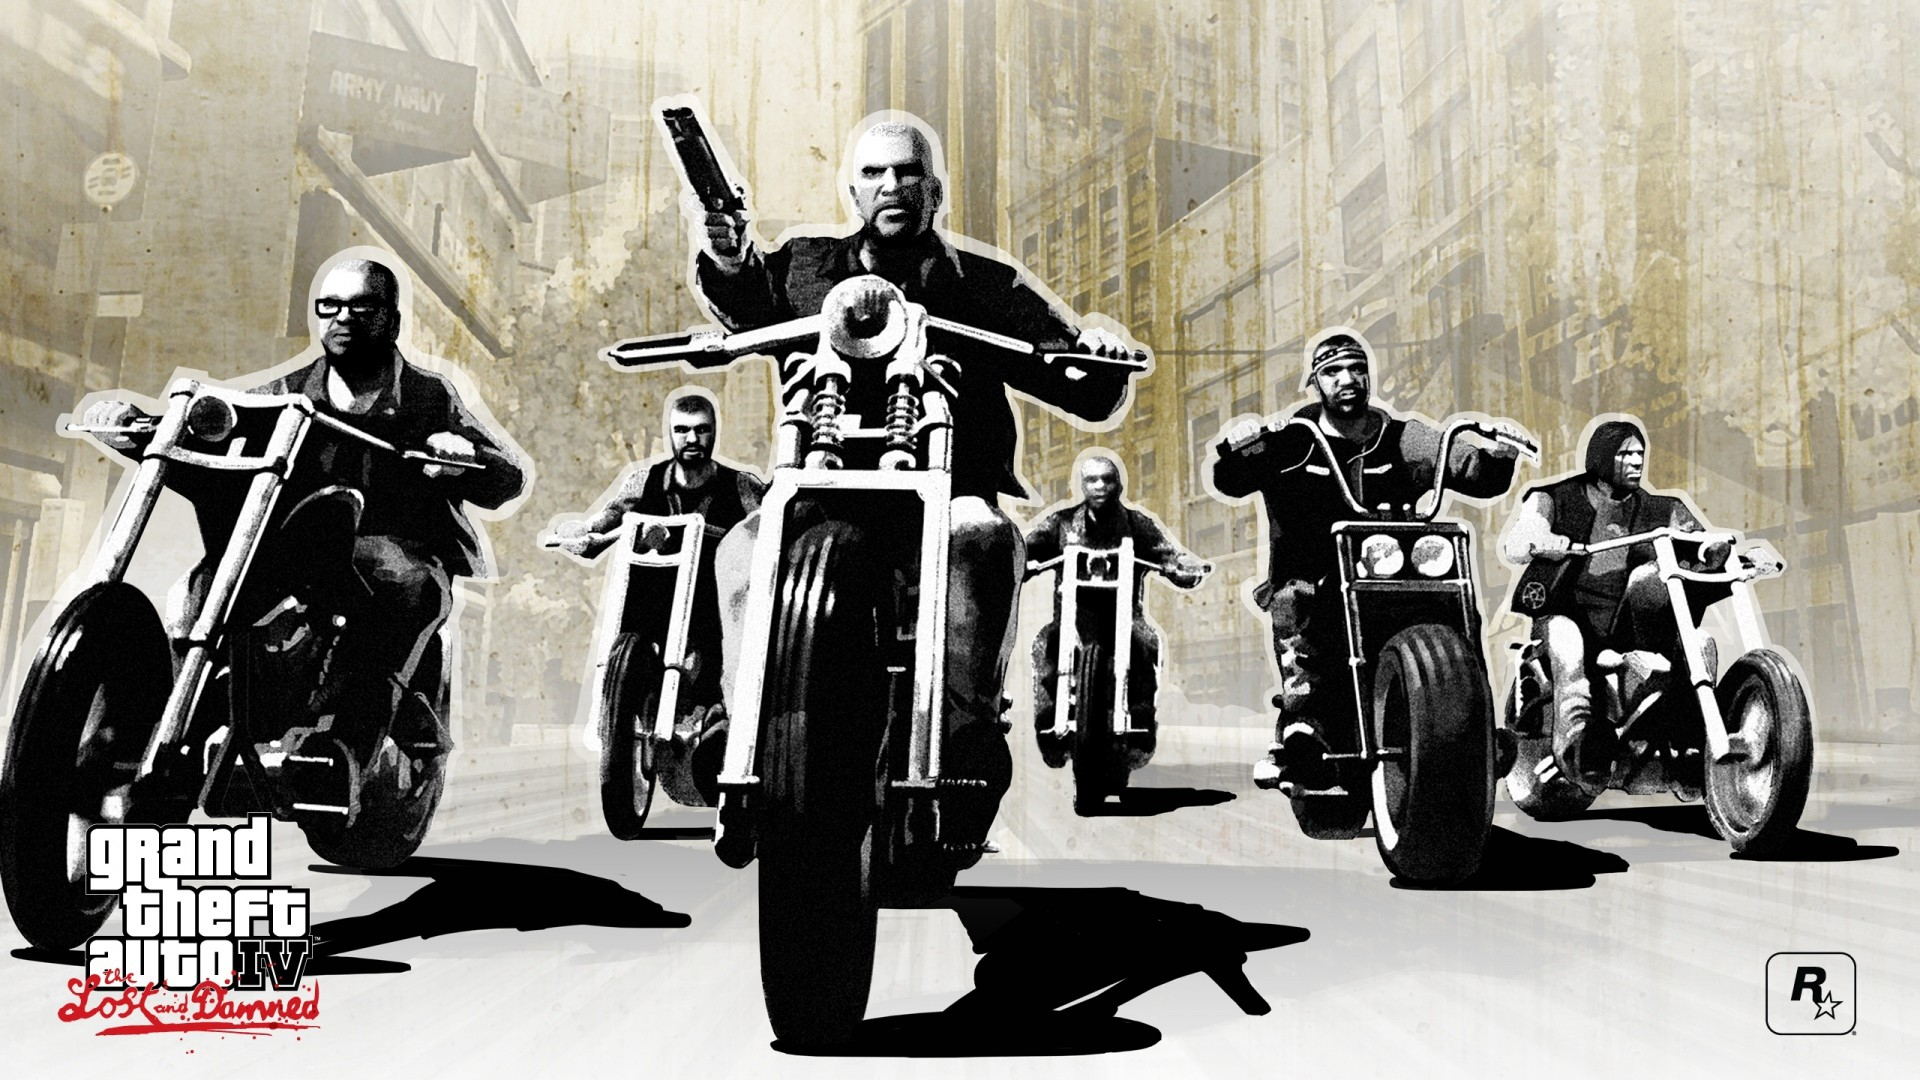 Res: 1920x1080, gta 4 lost and damned, grand theft auto 4 lost and damned, bikers